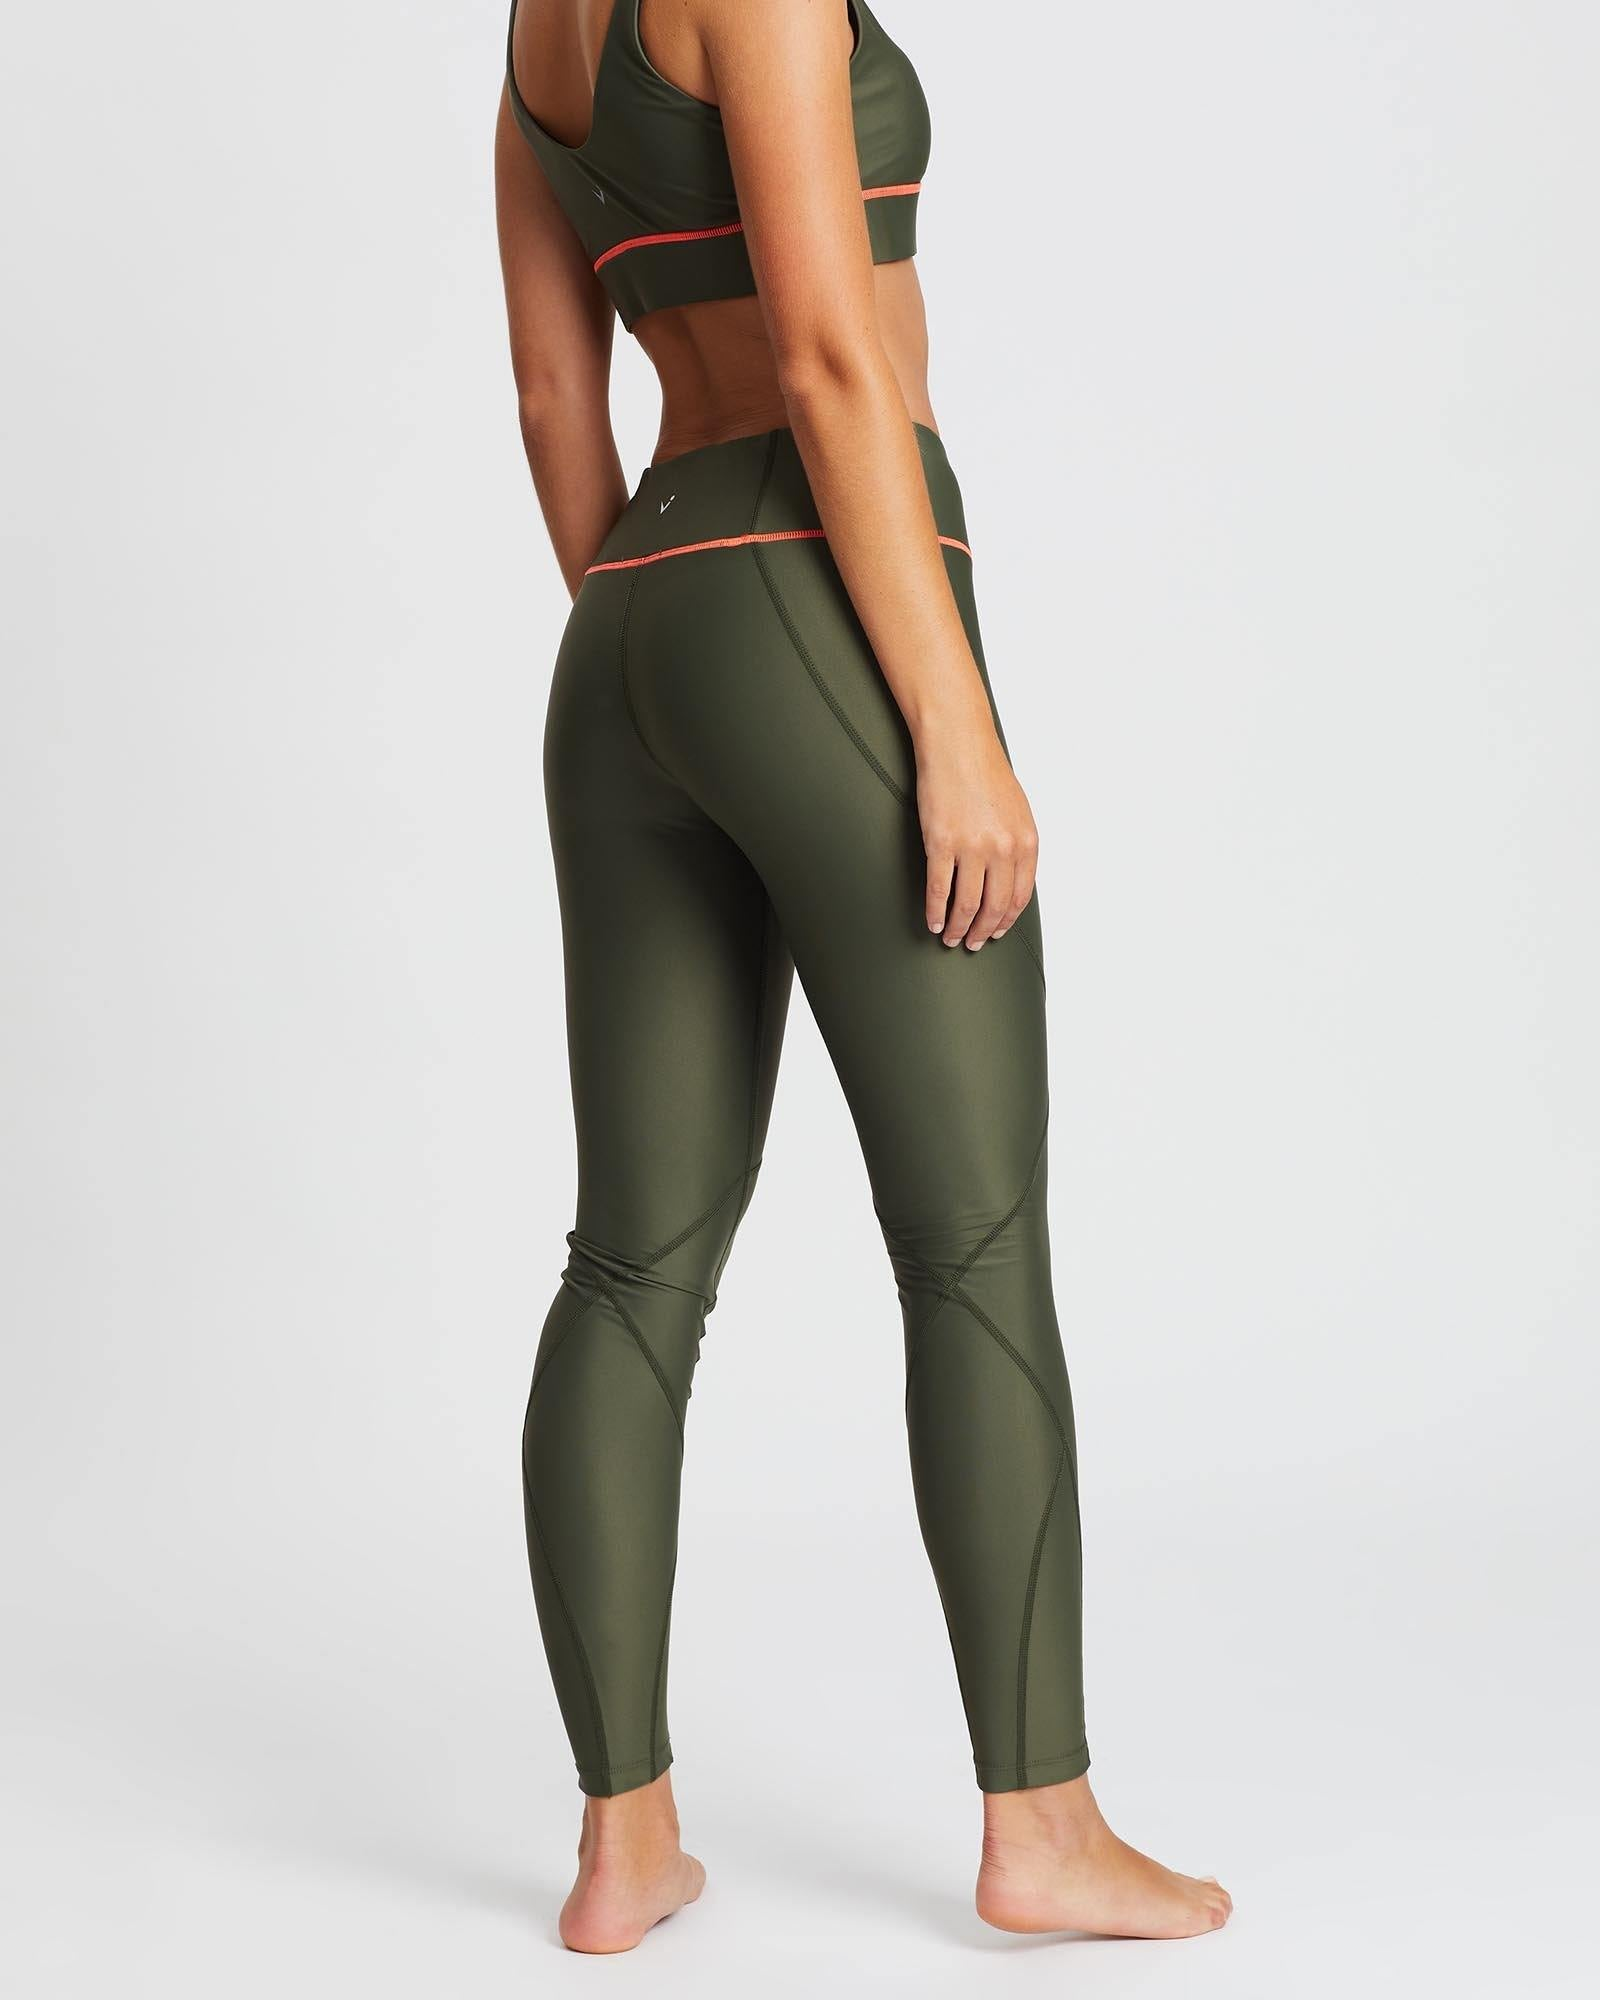 Sergeant Vastus mid waist long army Olive legging with contrast orange stitching between legs and waistband, worn with Pectoralis bra top, back view, for pilates, barre, yoga, gym and studio workouts